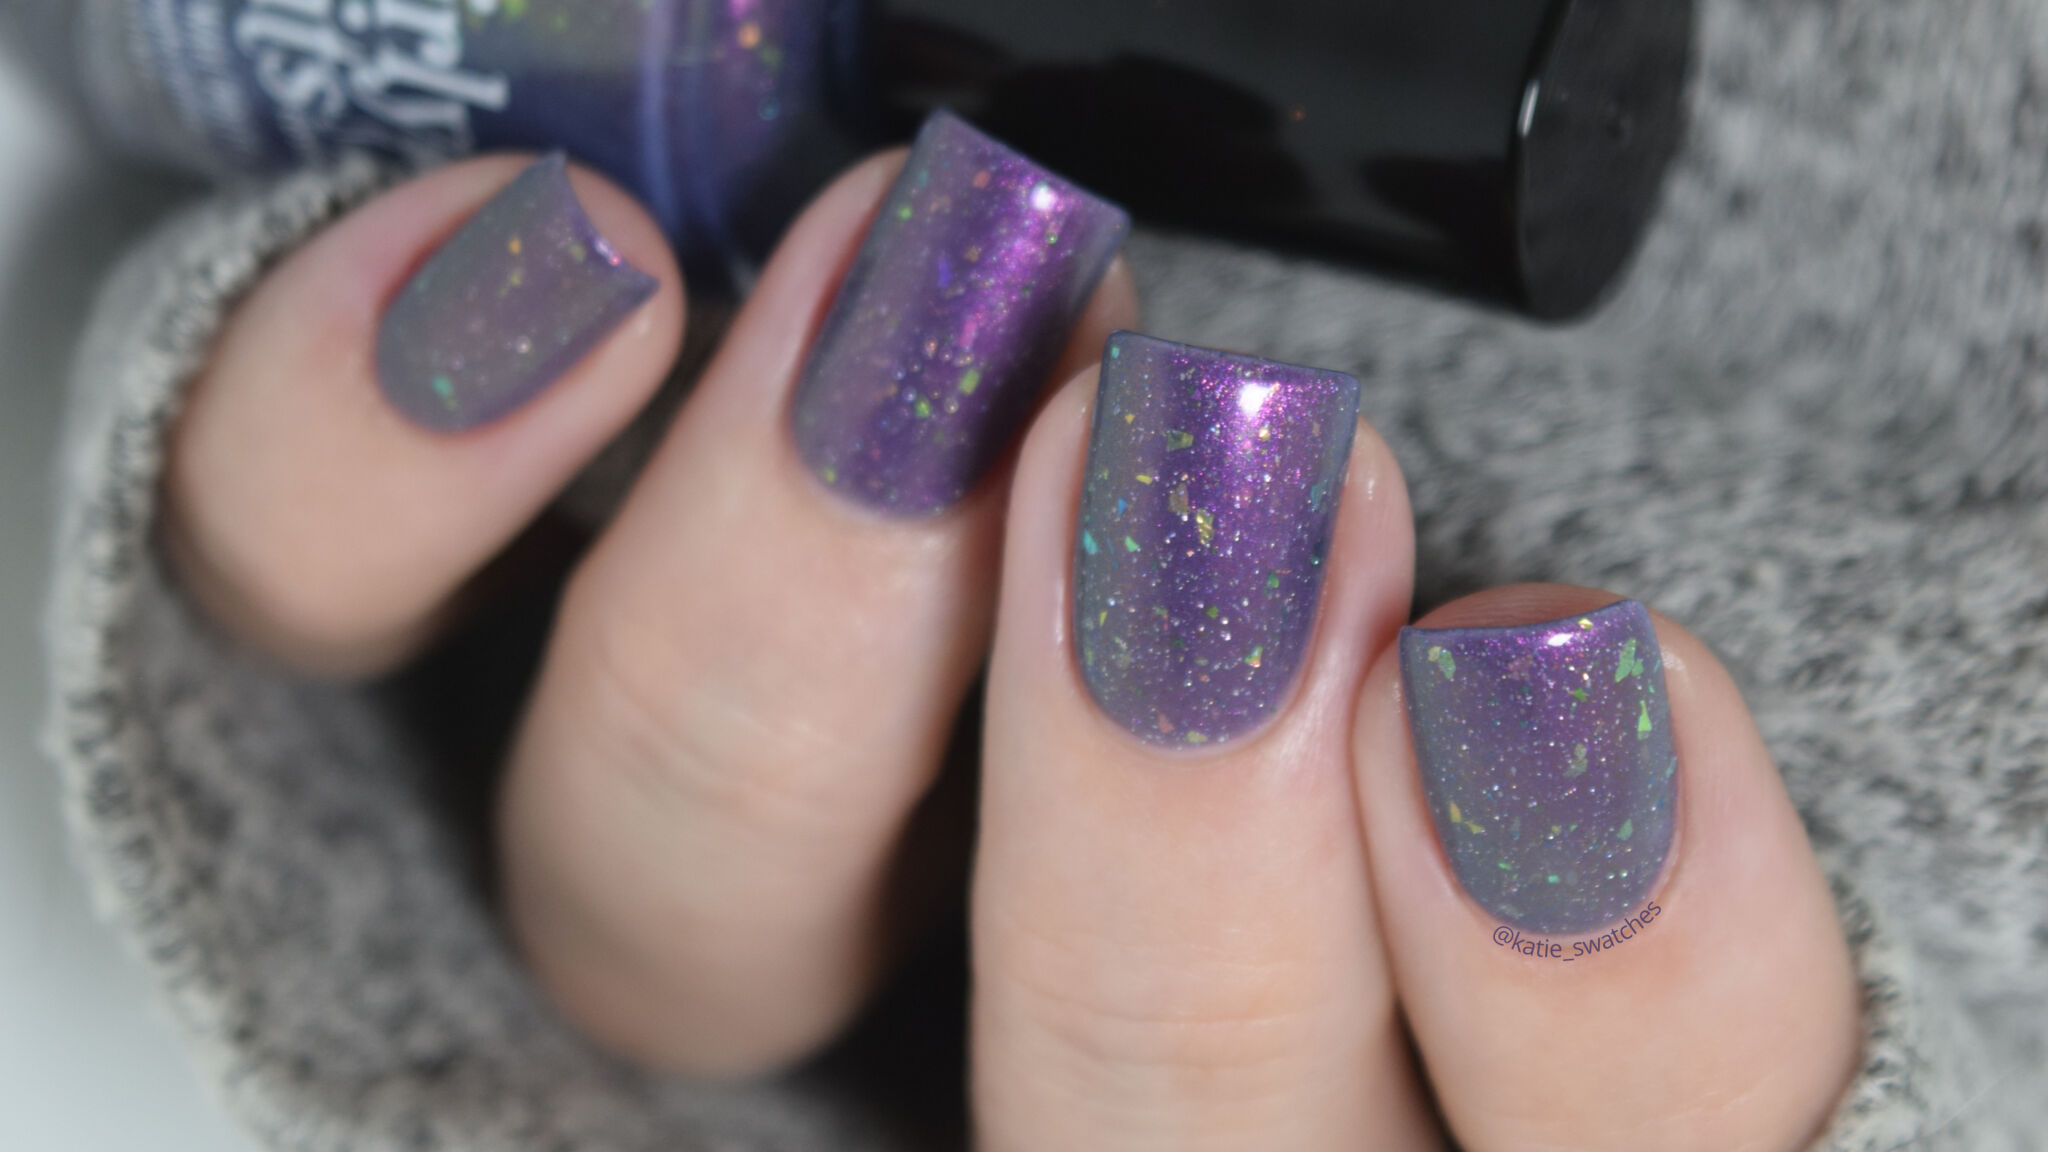 Girly Bits - Eww Yucca! nail polish swatch Polish Pickup PPU October 2019